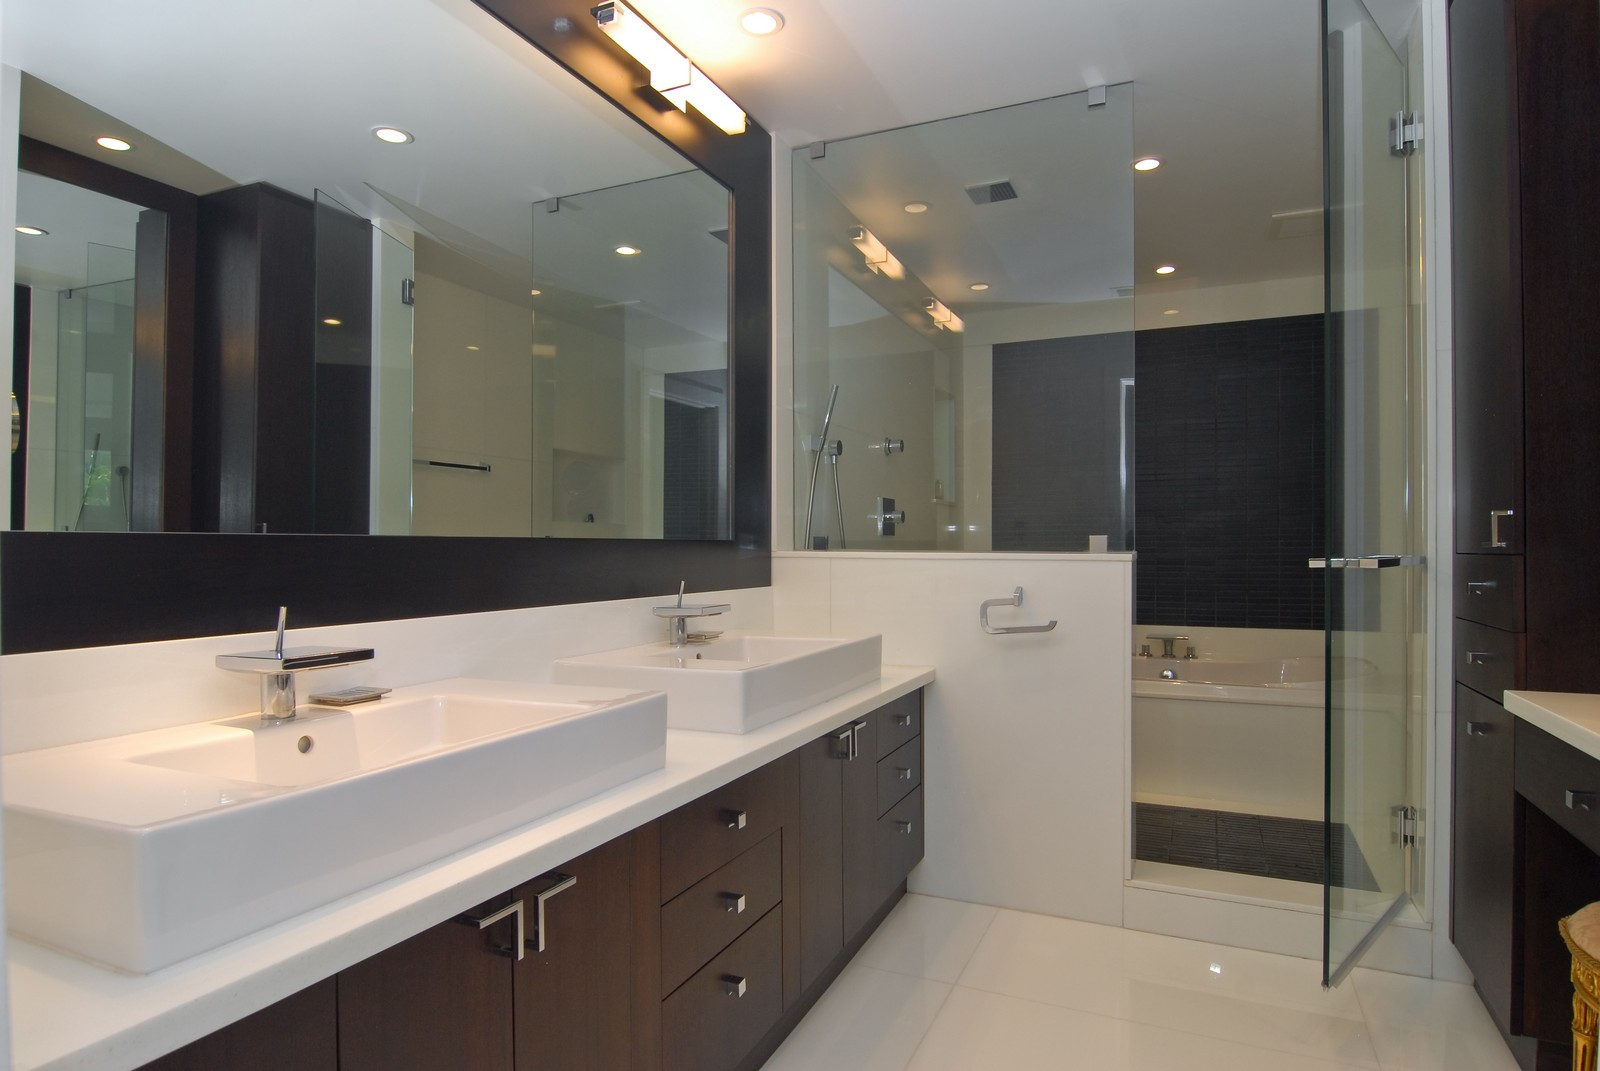 Real Estate Photography - 6842 Sunrise Ter, Coral Gables, FL, 33133 - Master Bathroom